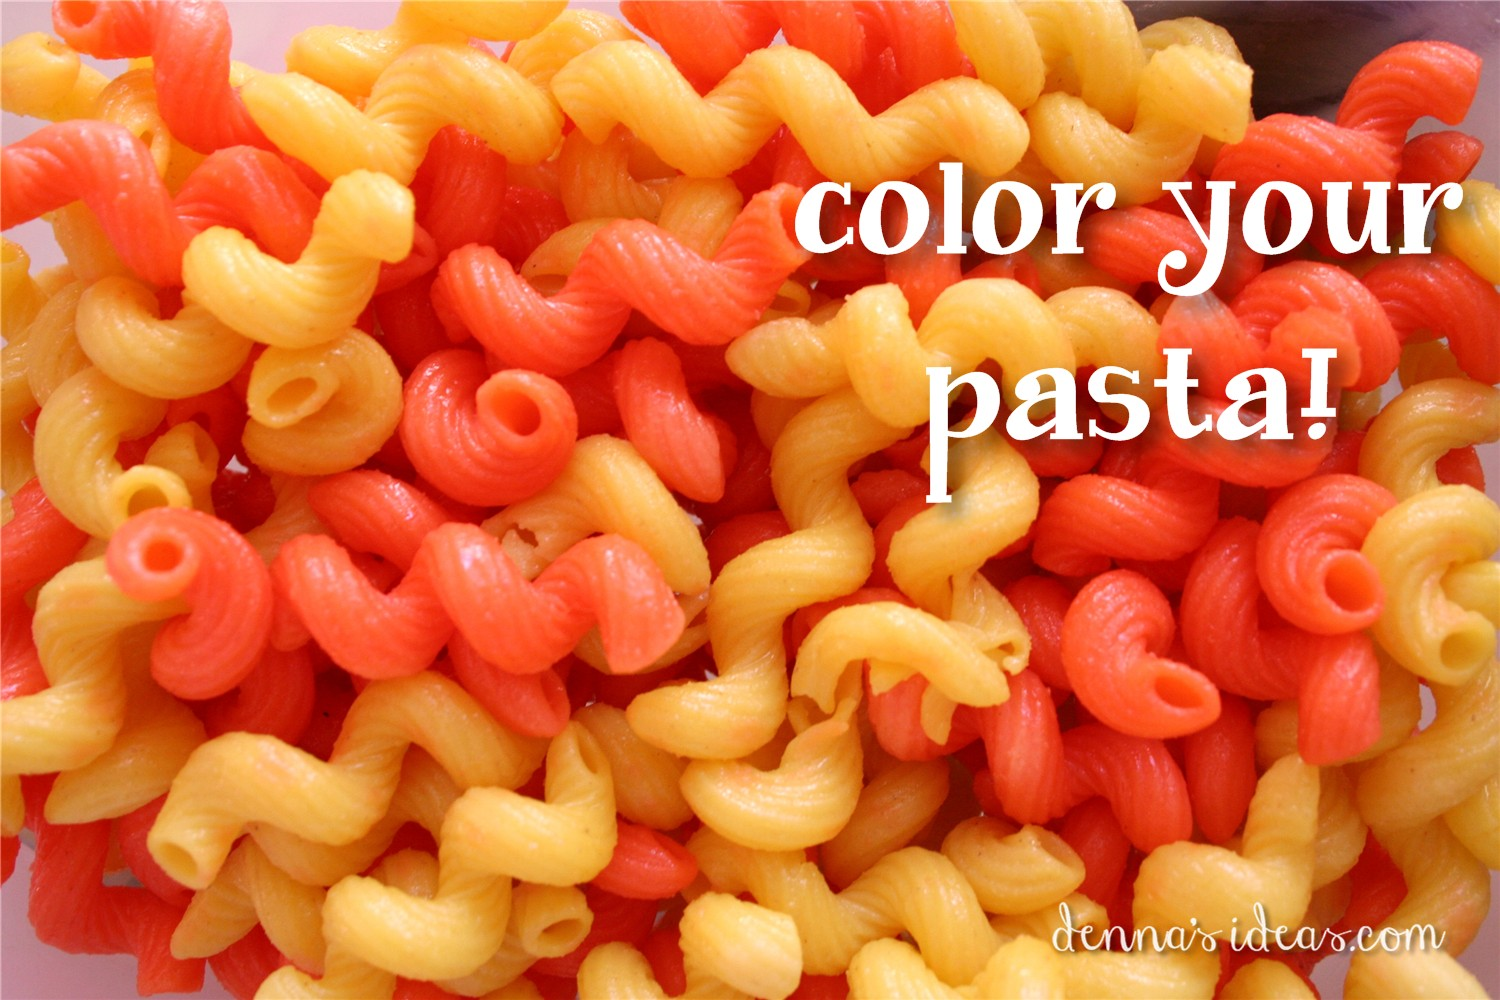 Dennas Ideas Pasta Salad Party Food For A Lalaloopsy How To Color